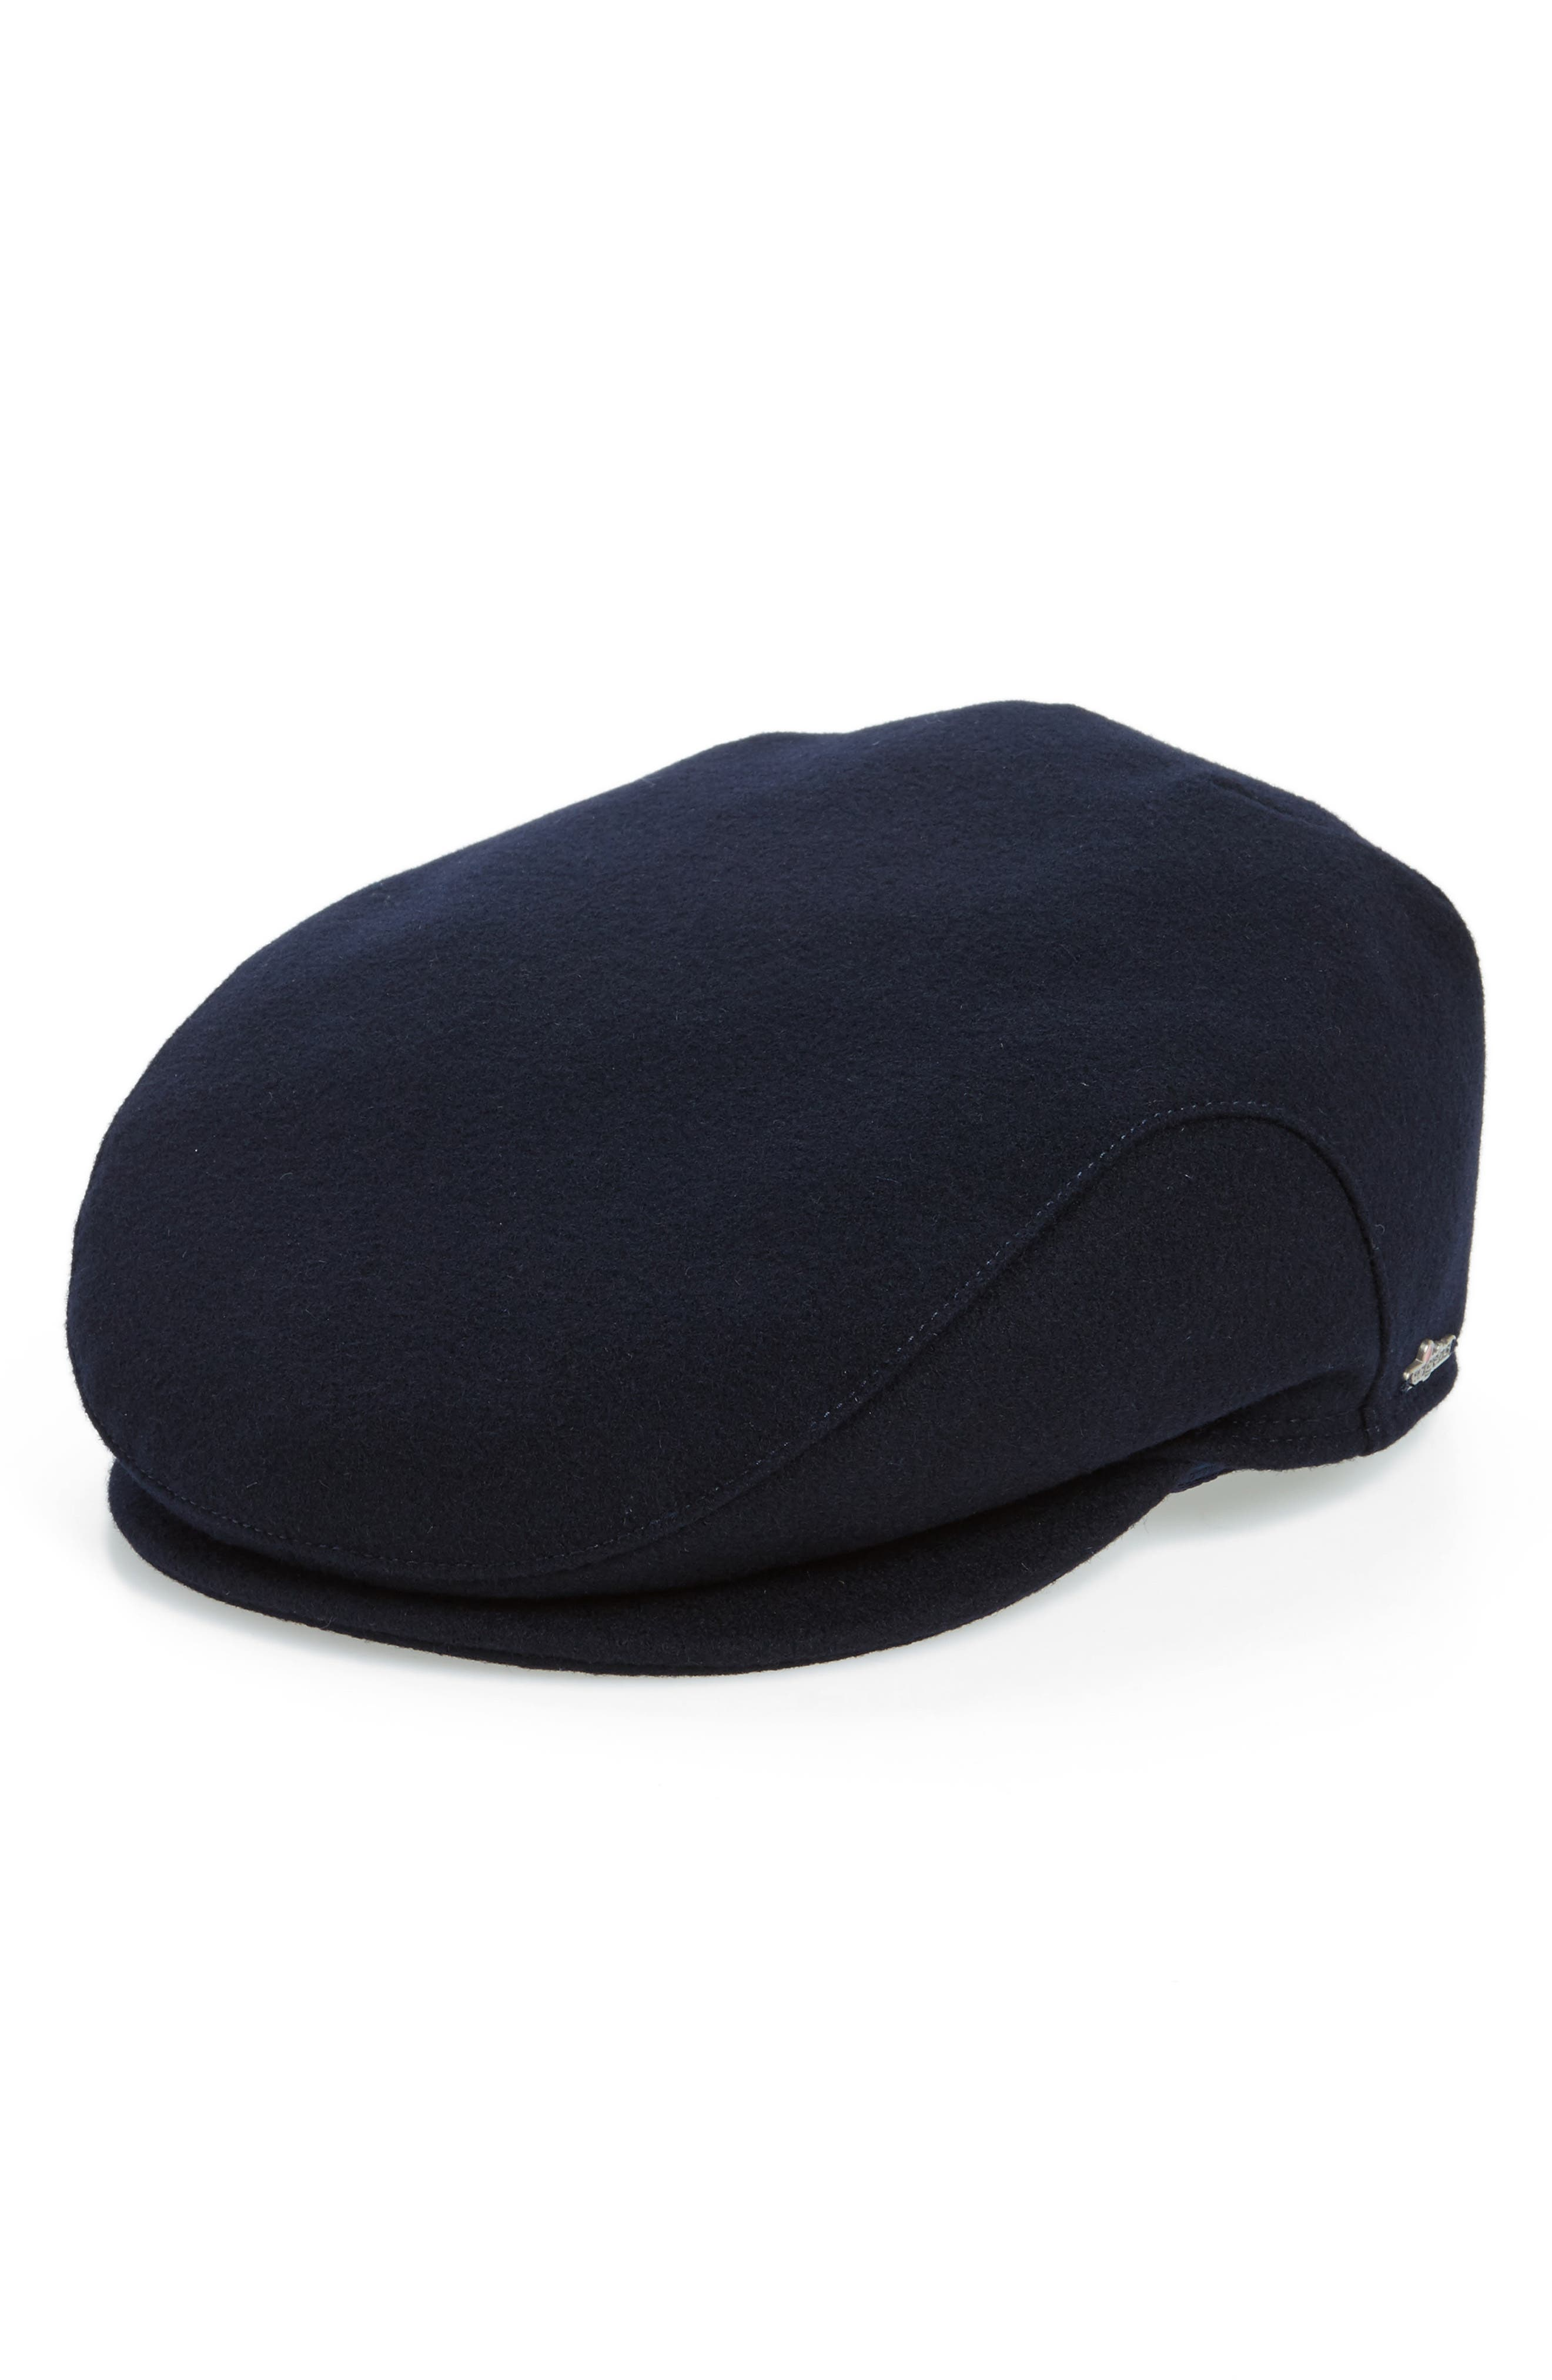 Wigens Melton Wool Driving Cap